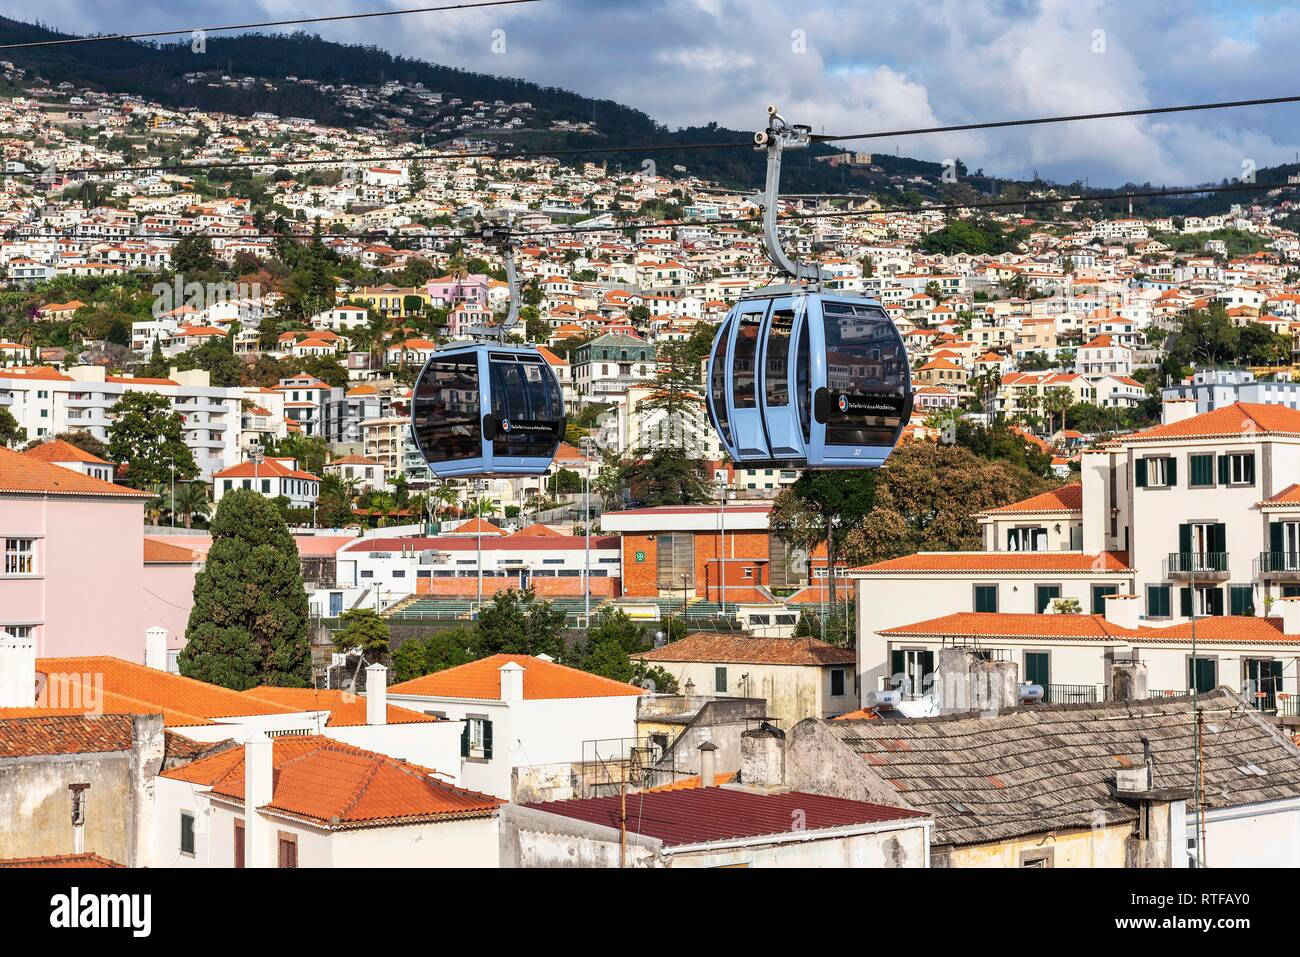 Two cable cars above the roofs of the city, cable car, Teleferico, Funchal, Madeira Island, Portugal - Stock Image